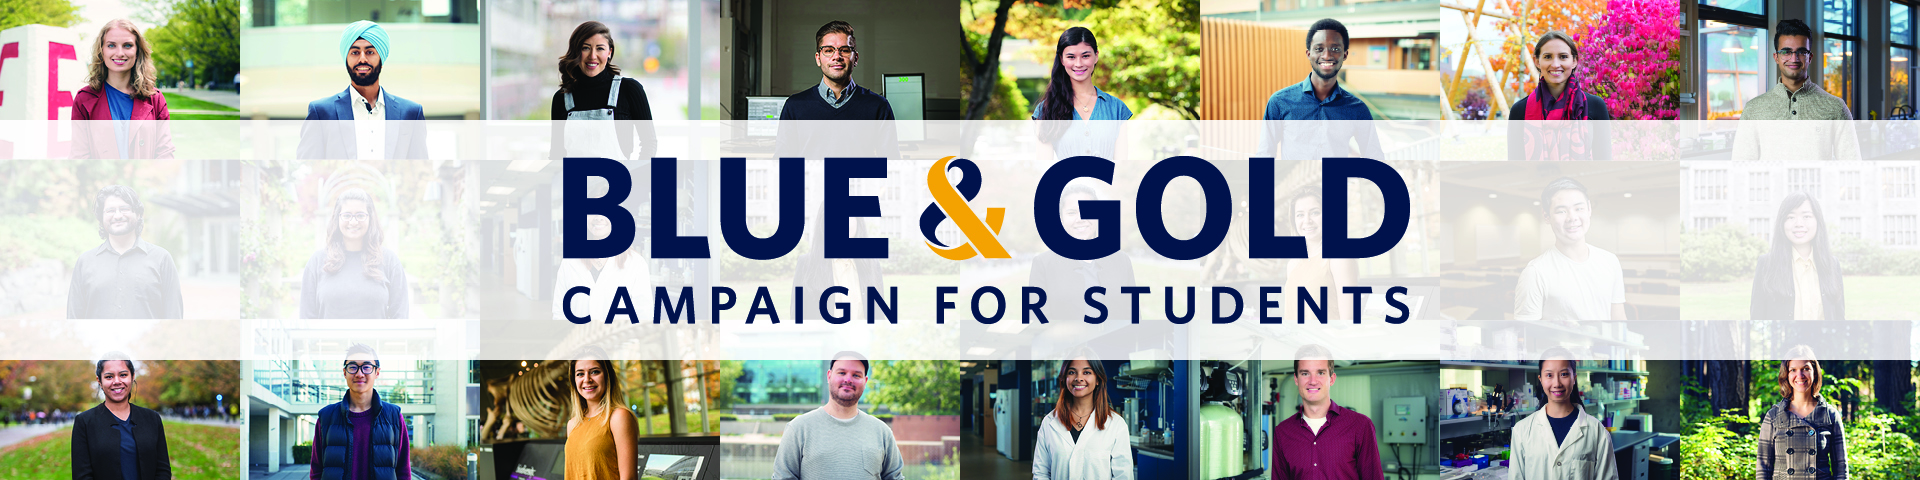 Blue & Gold Campaign for Students